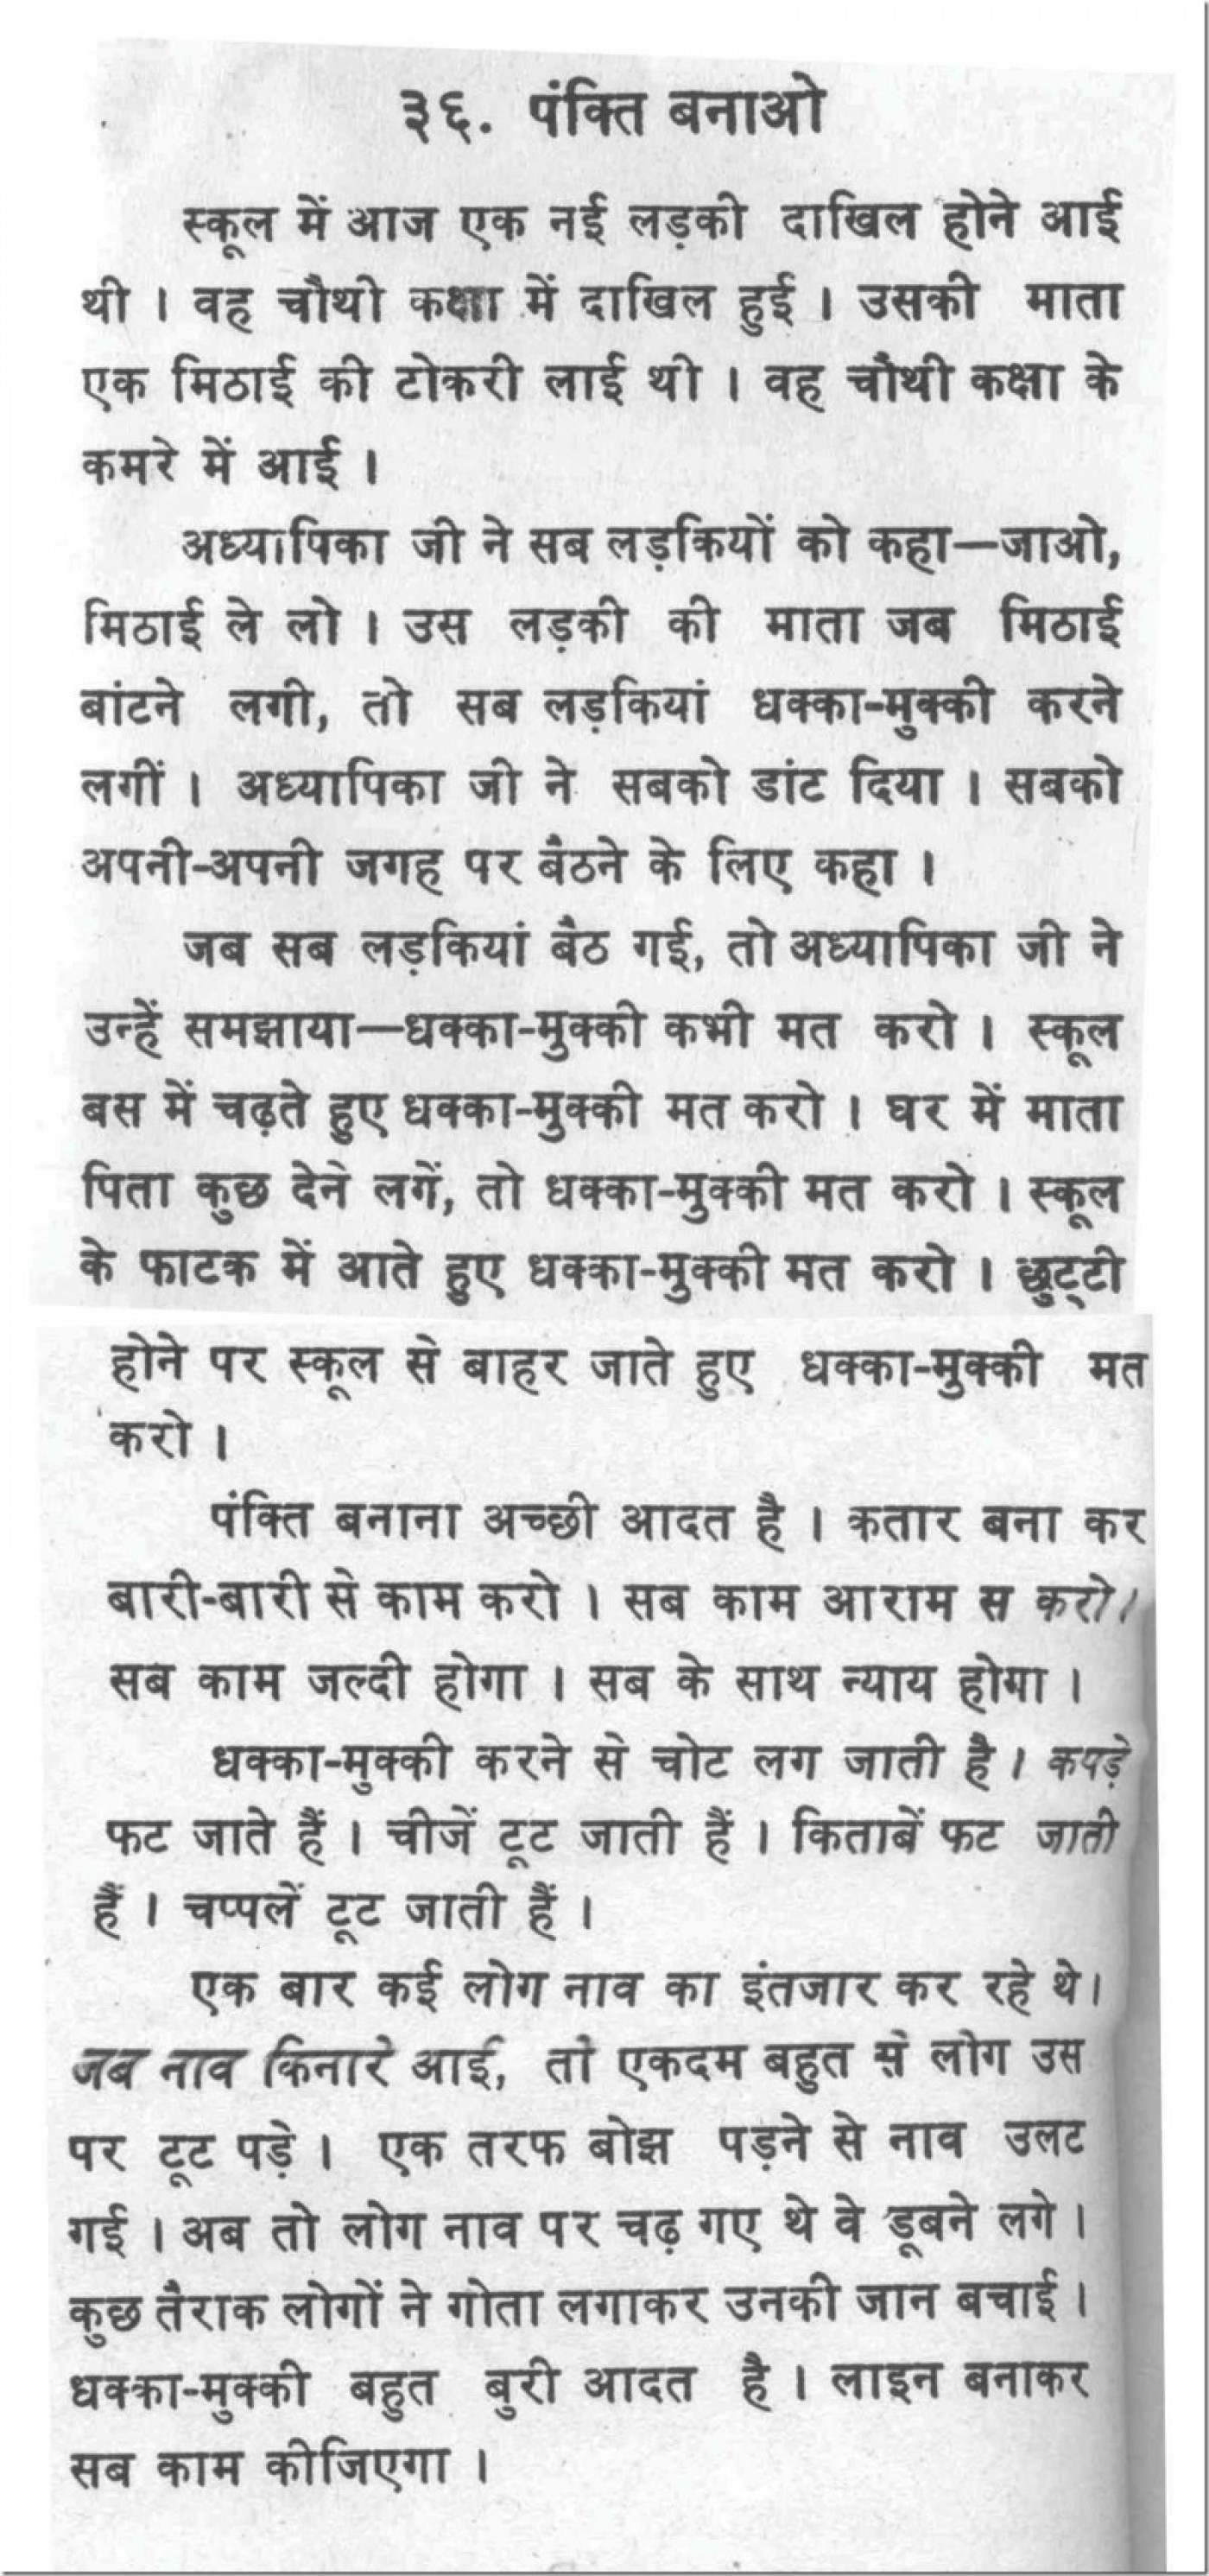 003 10030 Thumbresize8002c1704 Good Habits Essay In Hindi Exceptional Reading Habit Wikipedia 1400